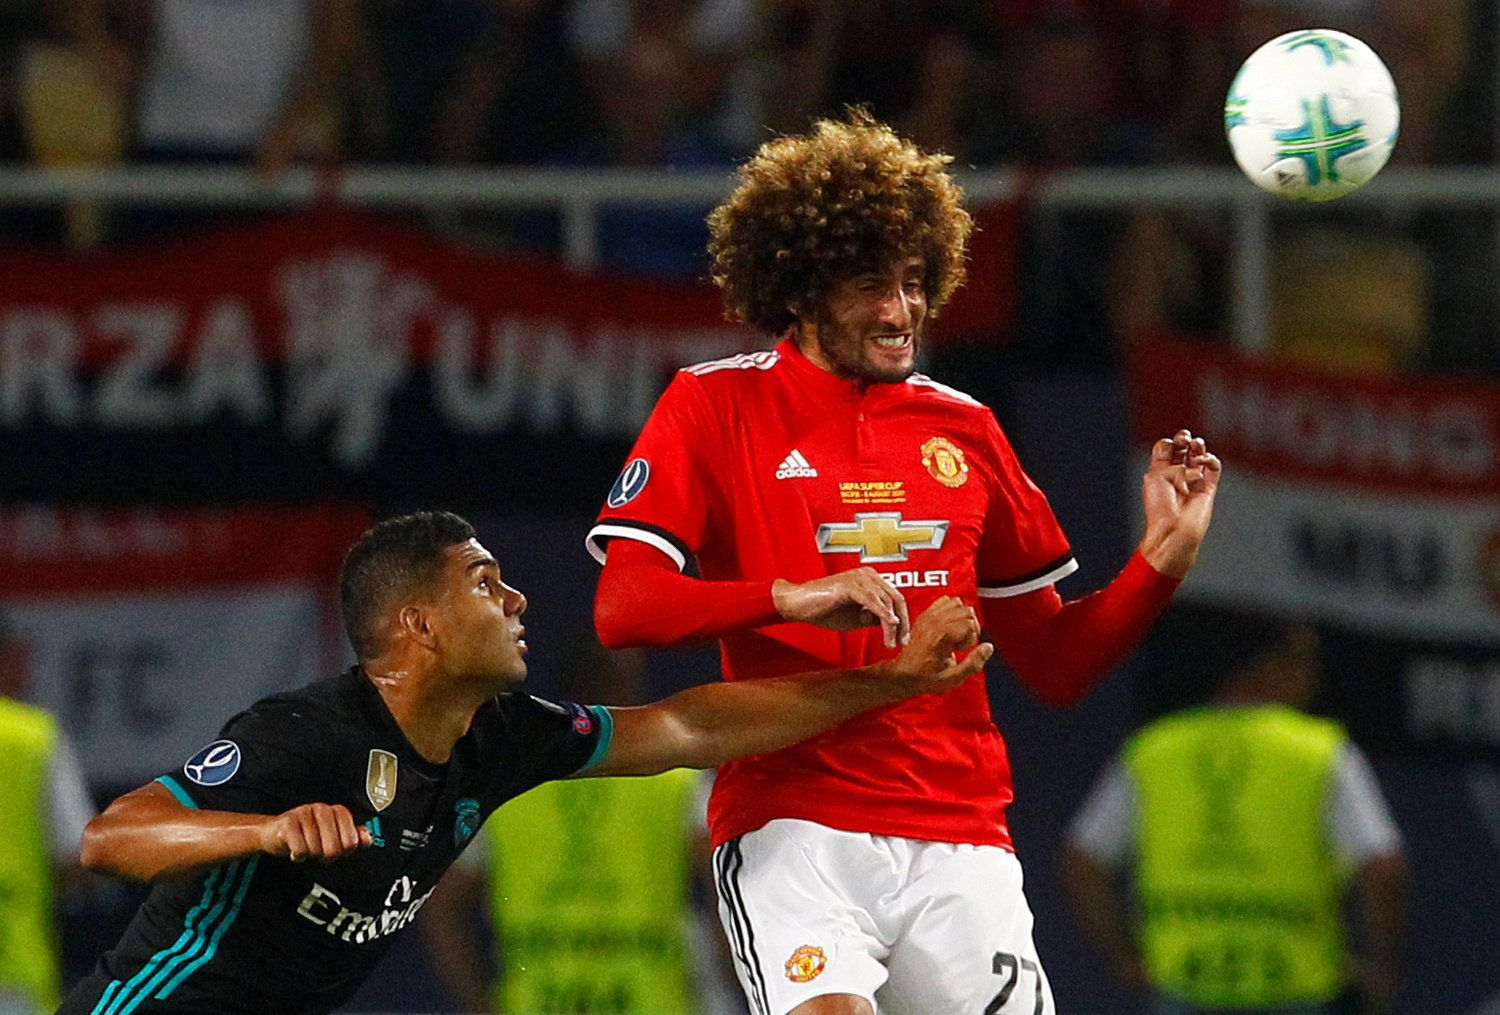 Picture Of A Ball Hitting Marouane Fellaini's Face Sparked Some Glorious